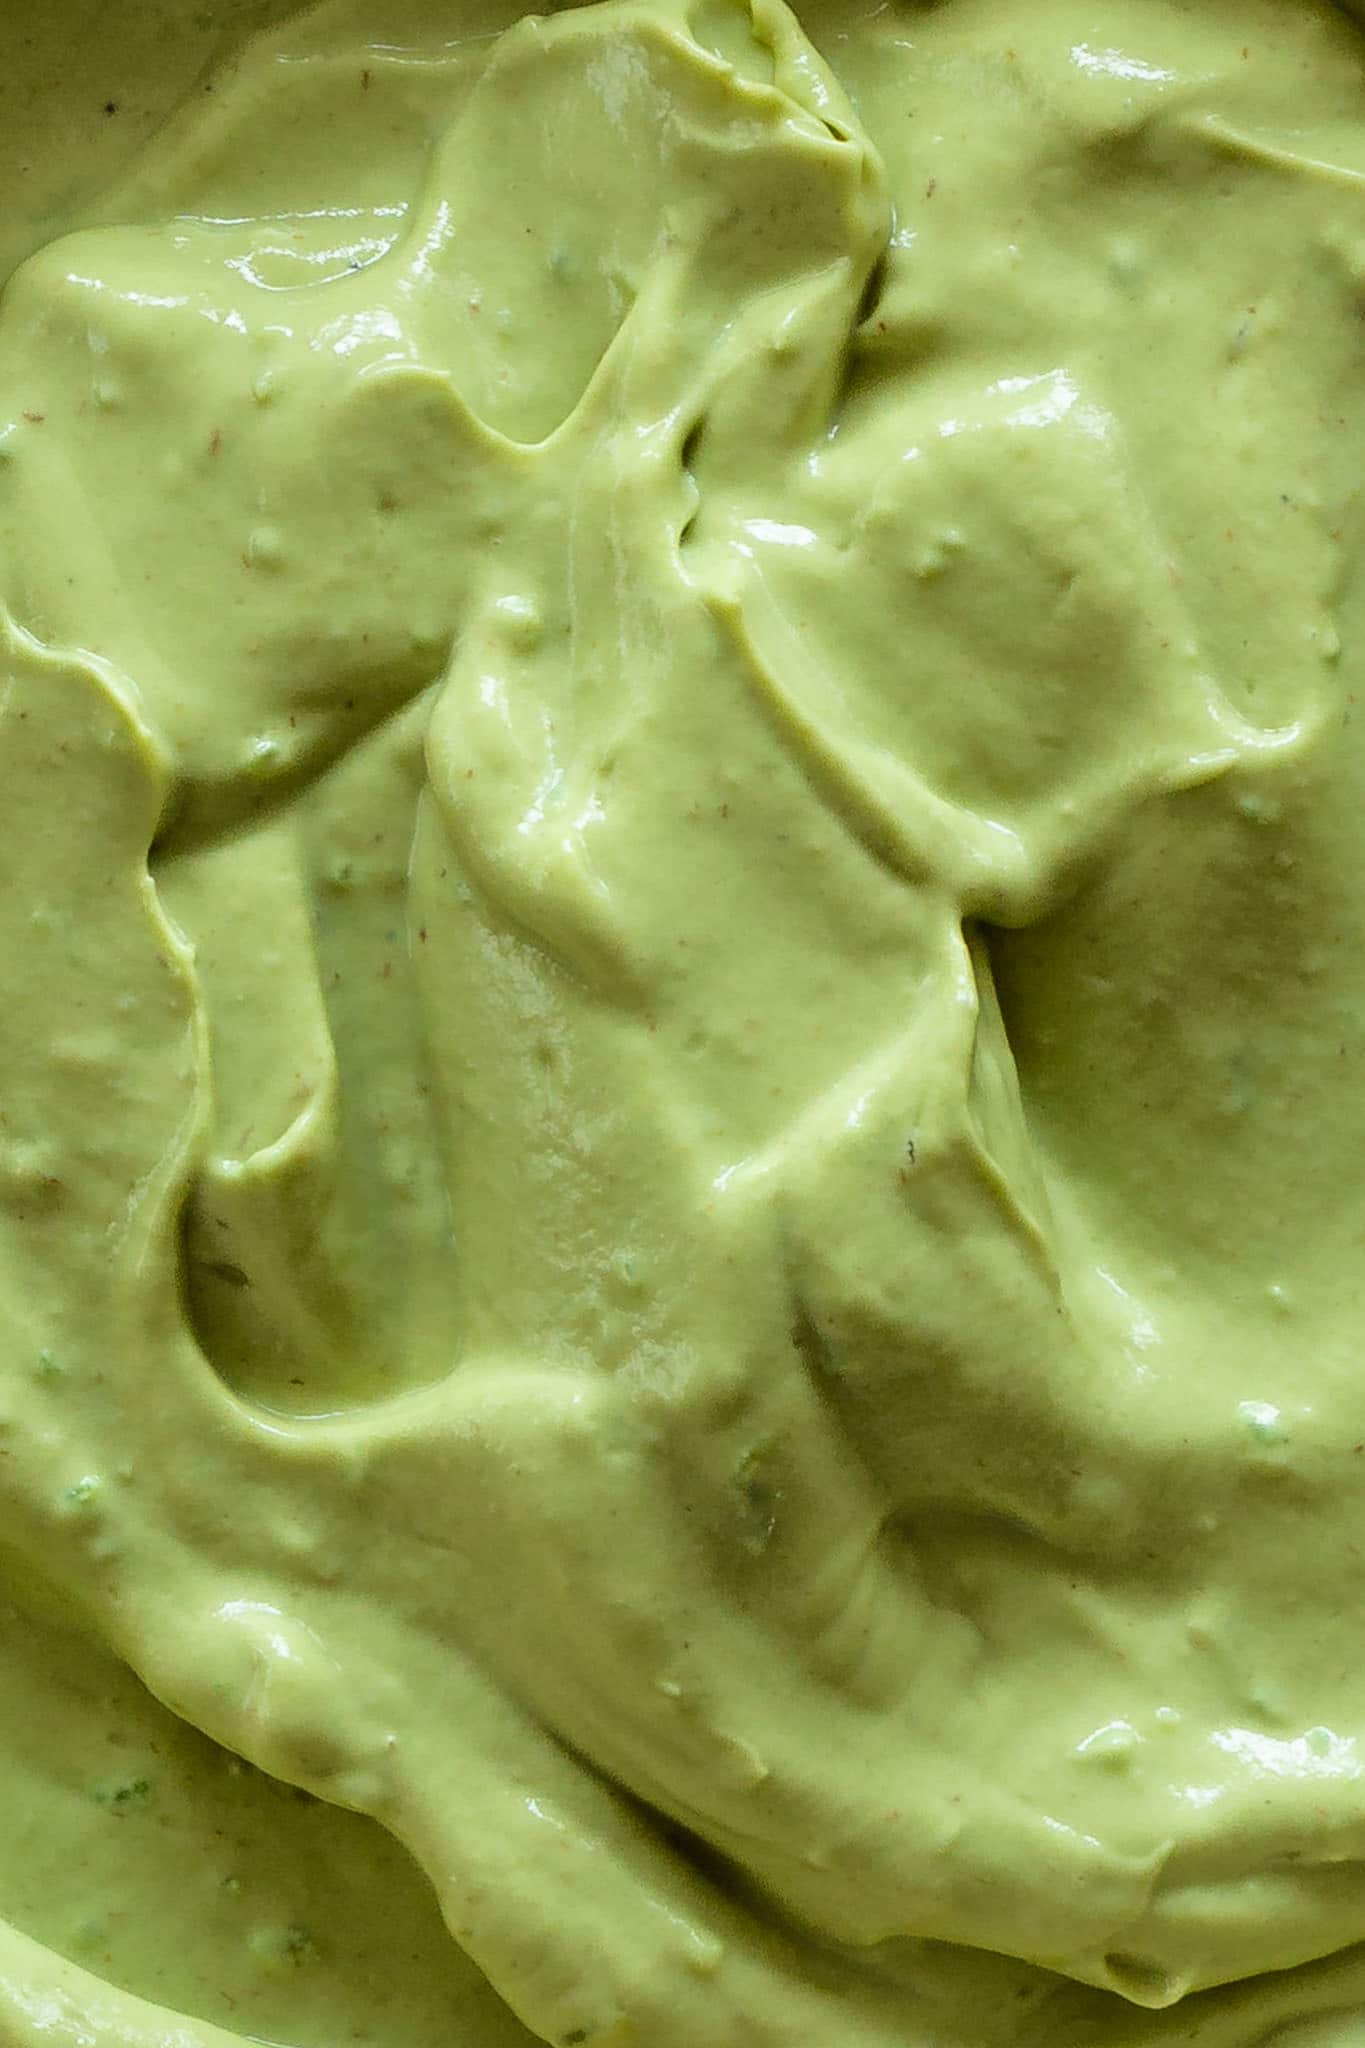 A close up of creamy whipped avocado.